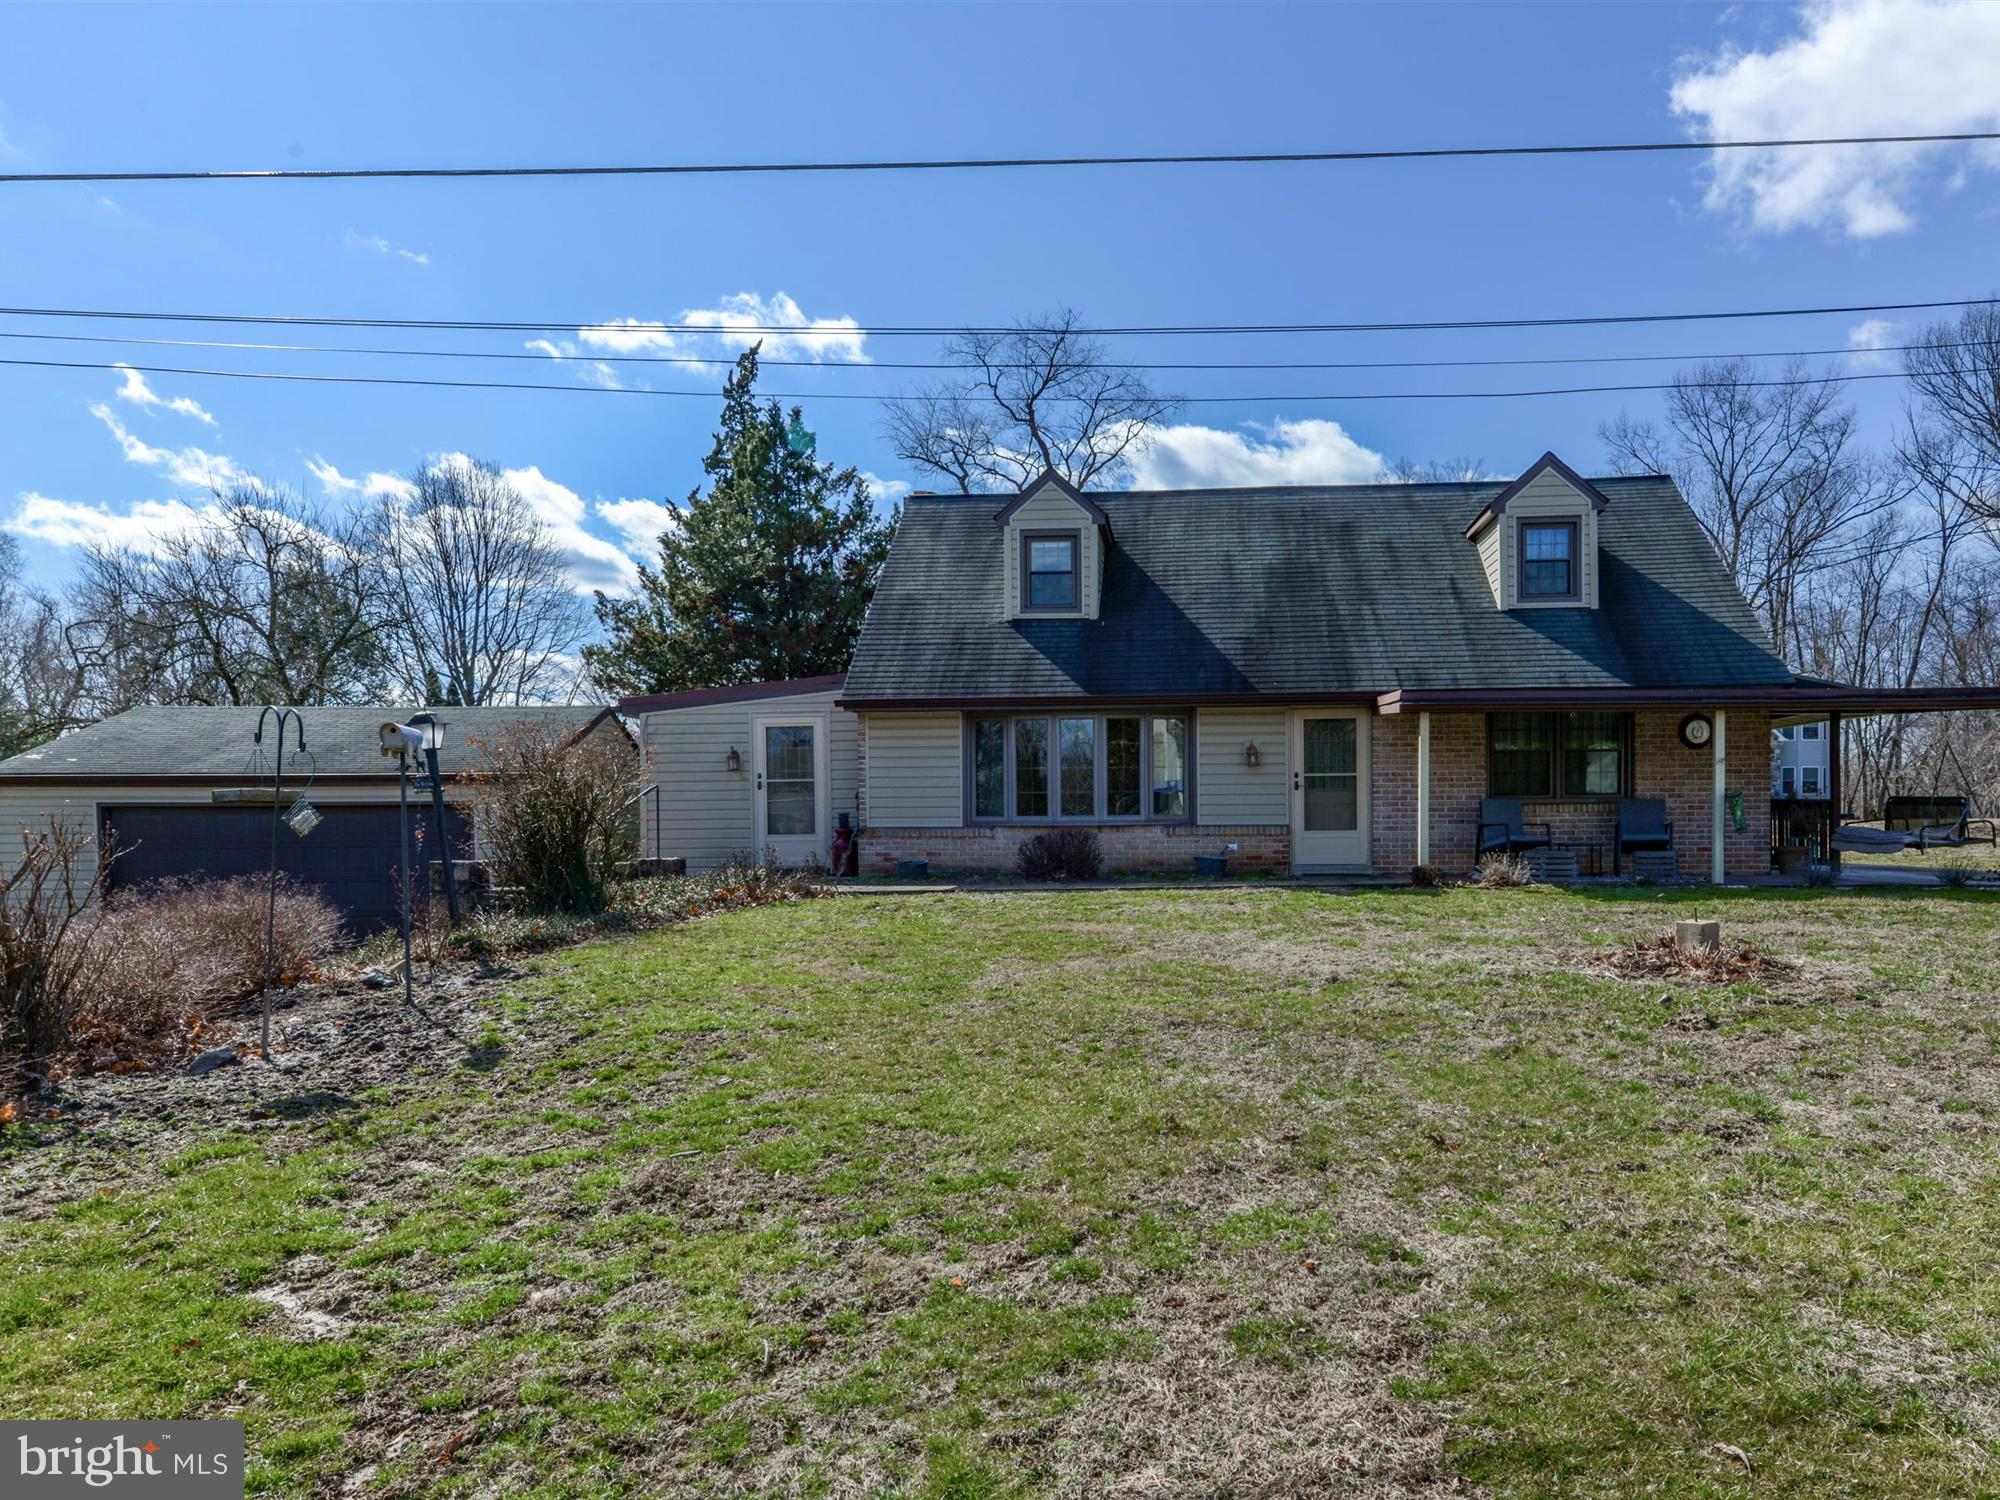 24 CLEARVIEW ROAD, WILLOW STREET, PA 17584